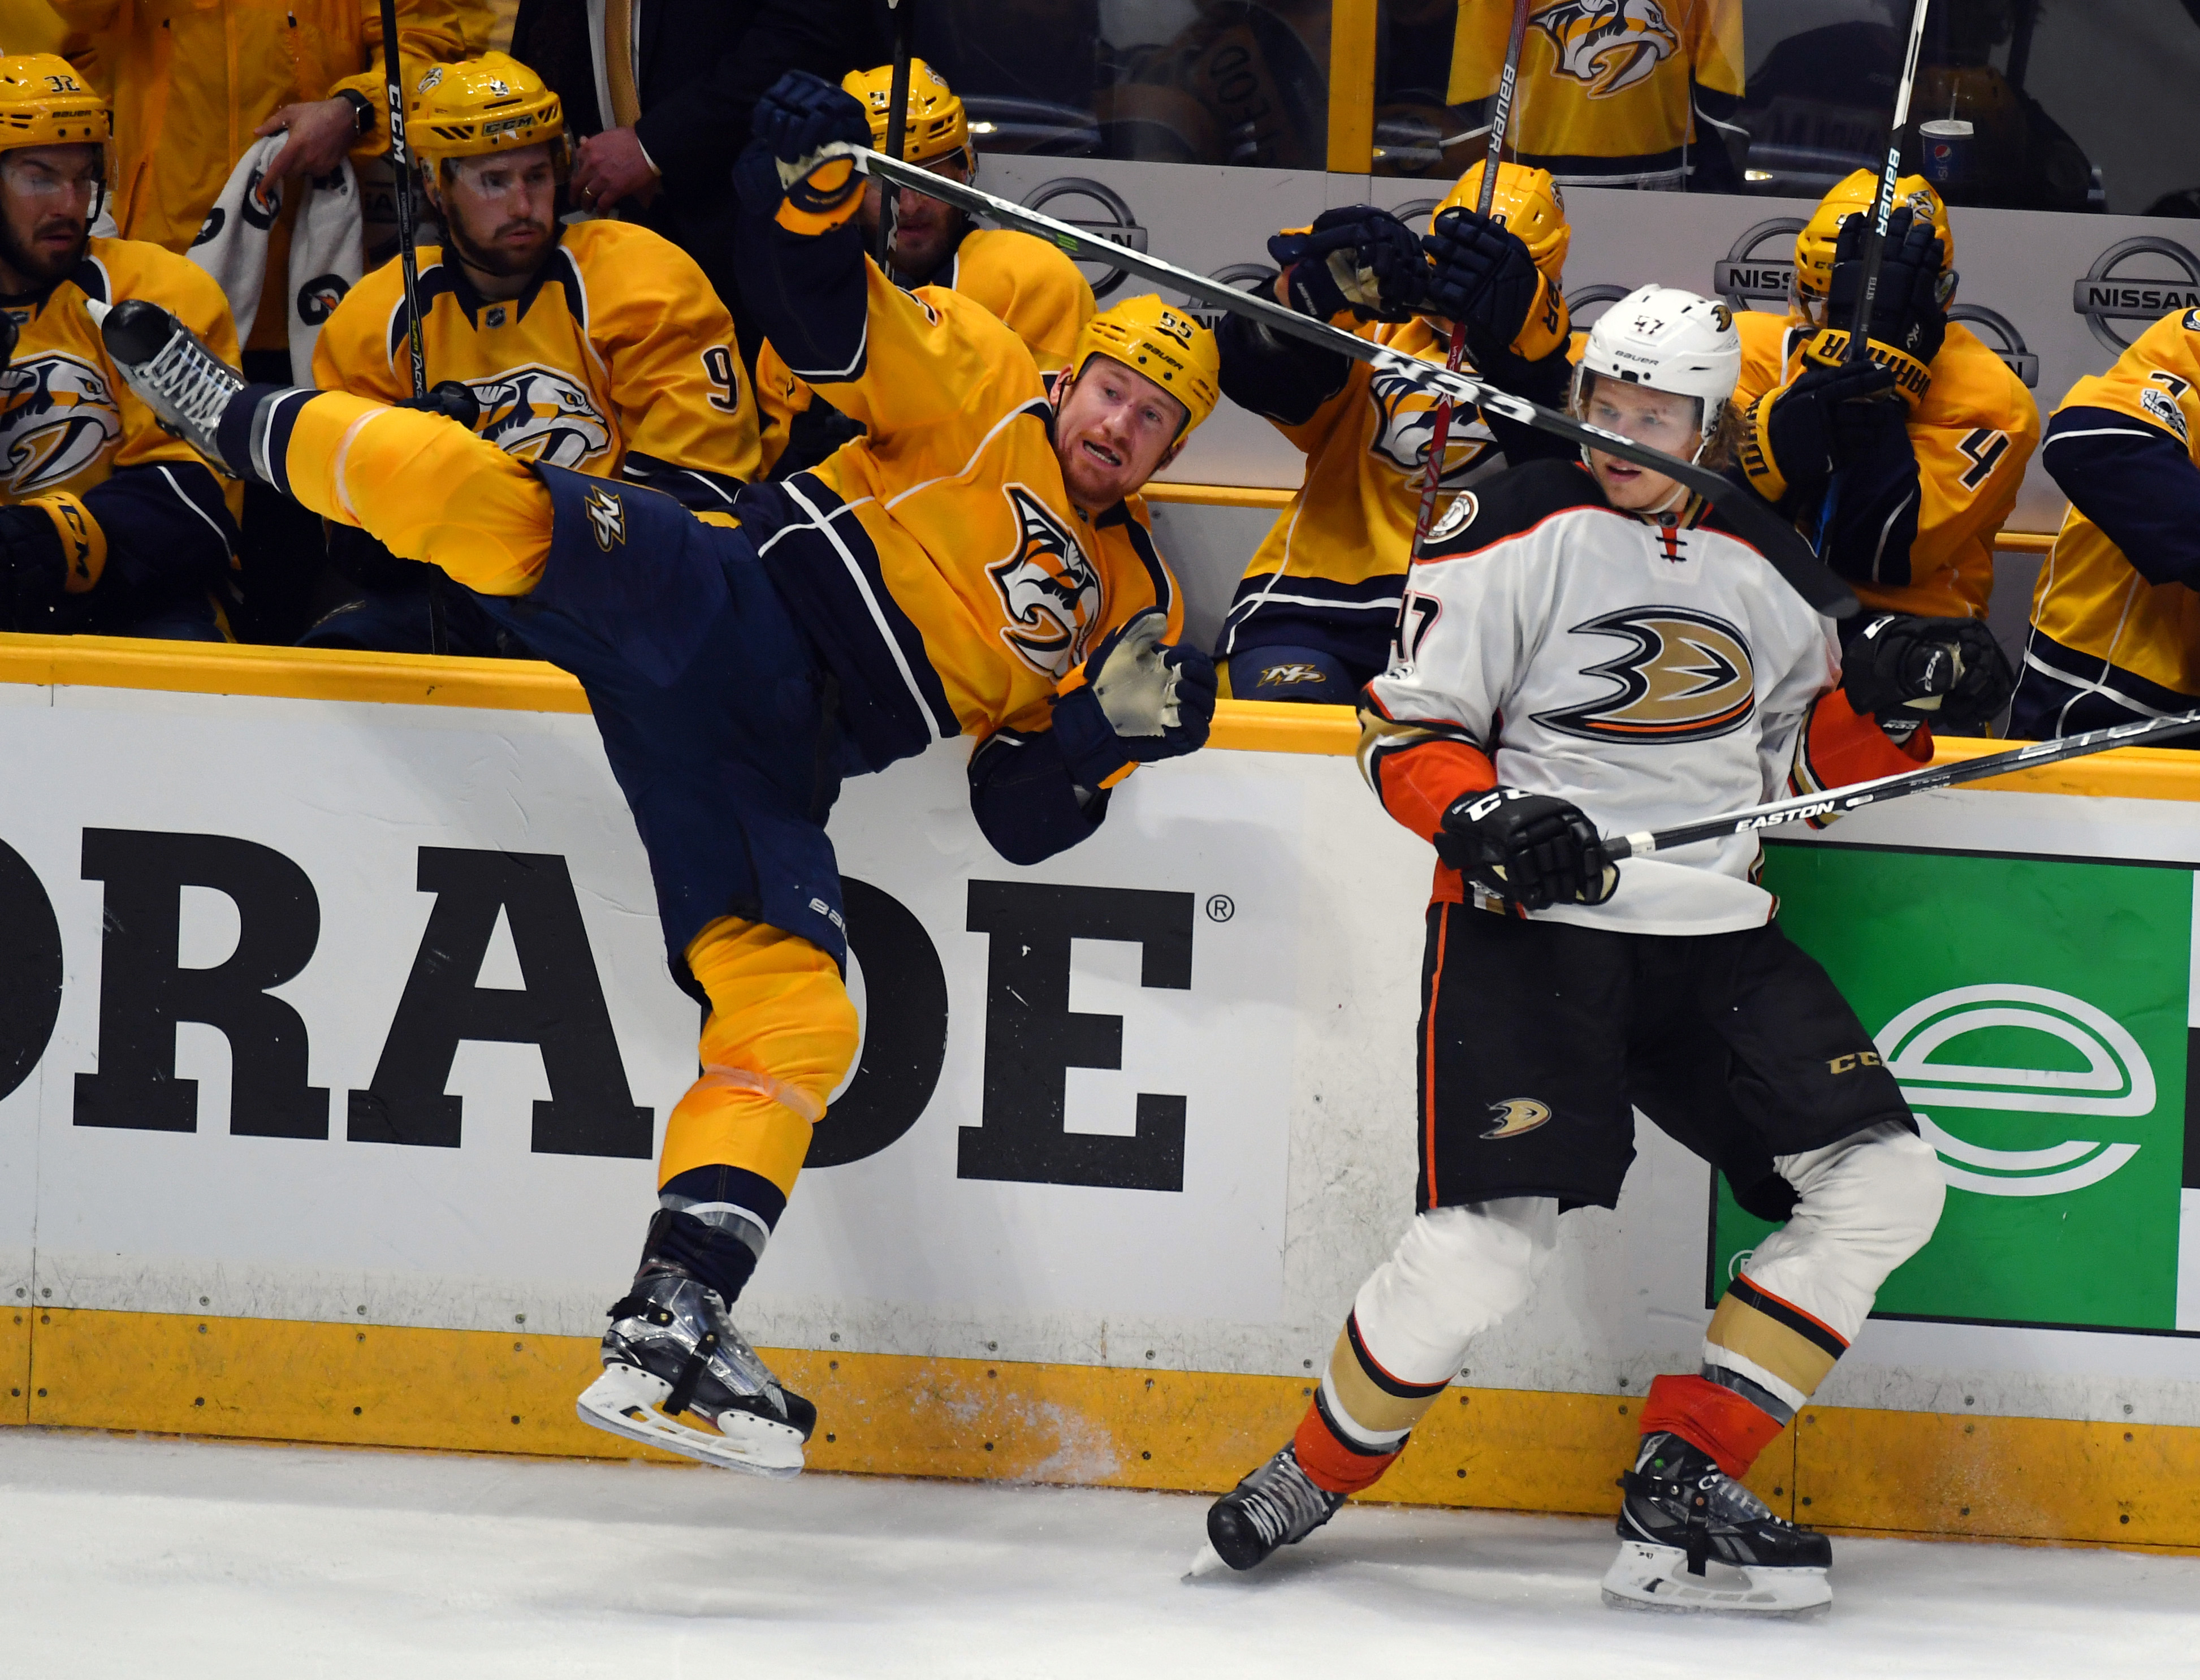 10070436-nhl-stanley-cup-playoffs-anaheim-ducks-at-nashville-predators